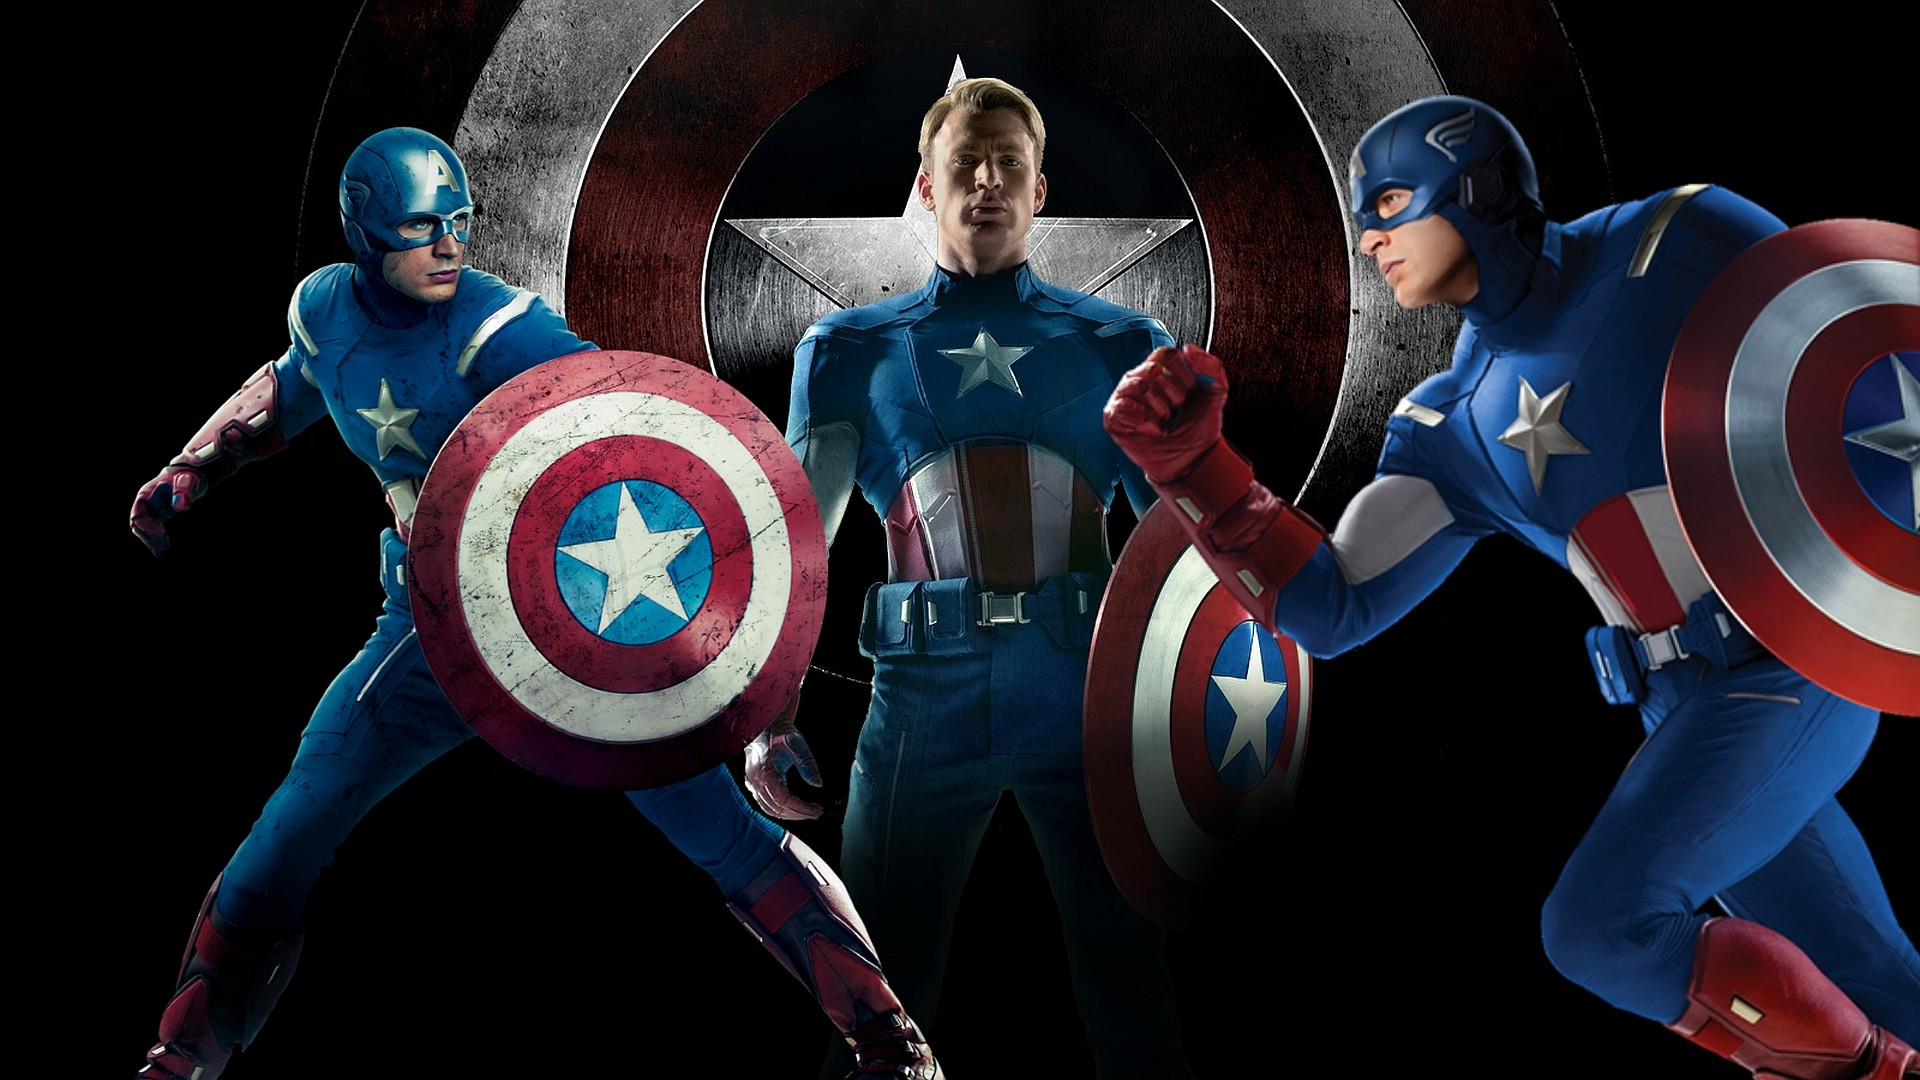 Captain America First Avenger wallpapers (64 Wallpapers) – HD Wallpapers